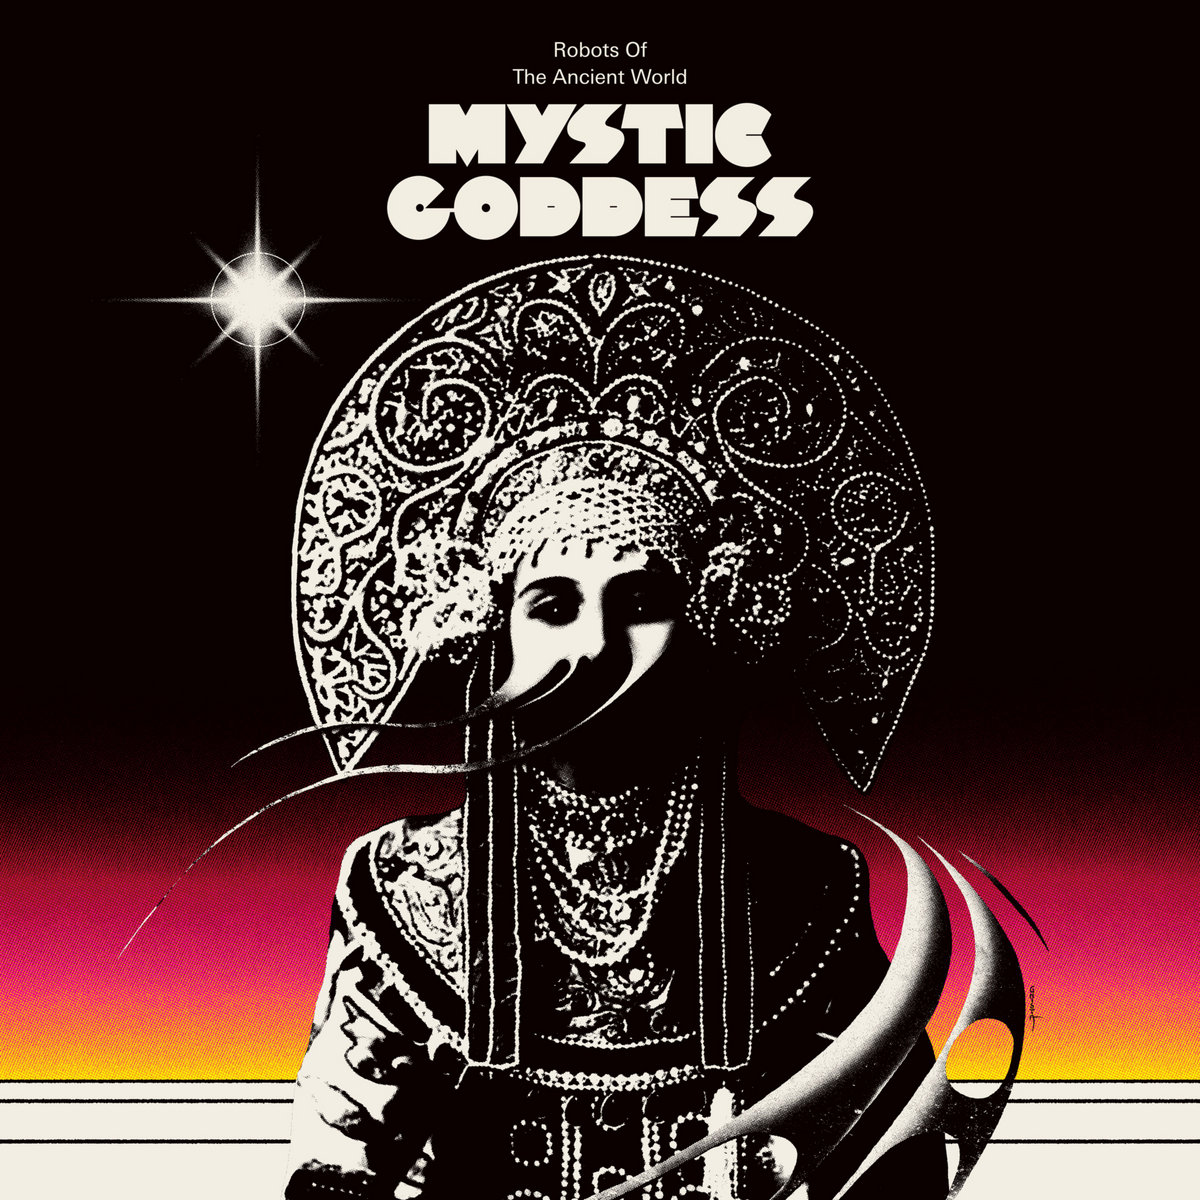 Reseña: ROBOTS OF THE ANCIENT WORLD.-'Mystic Goddes